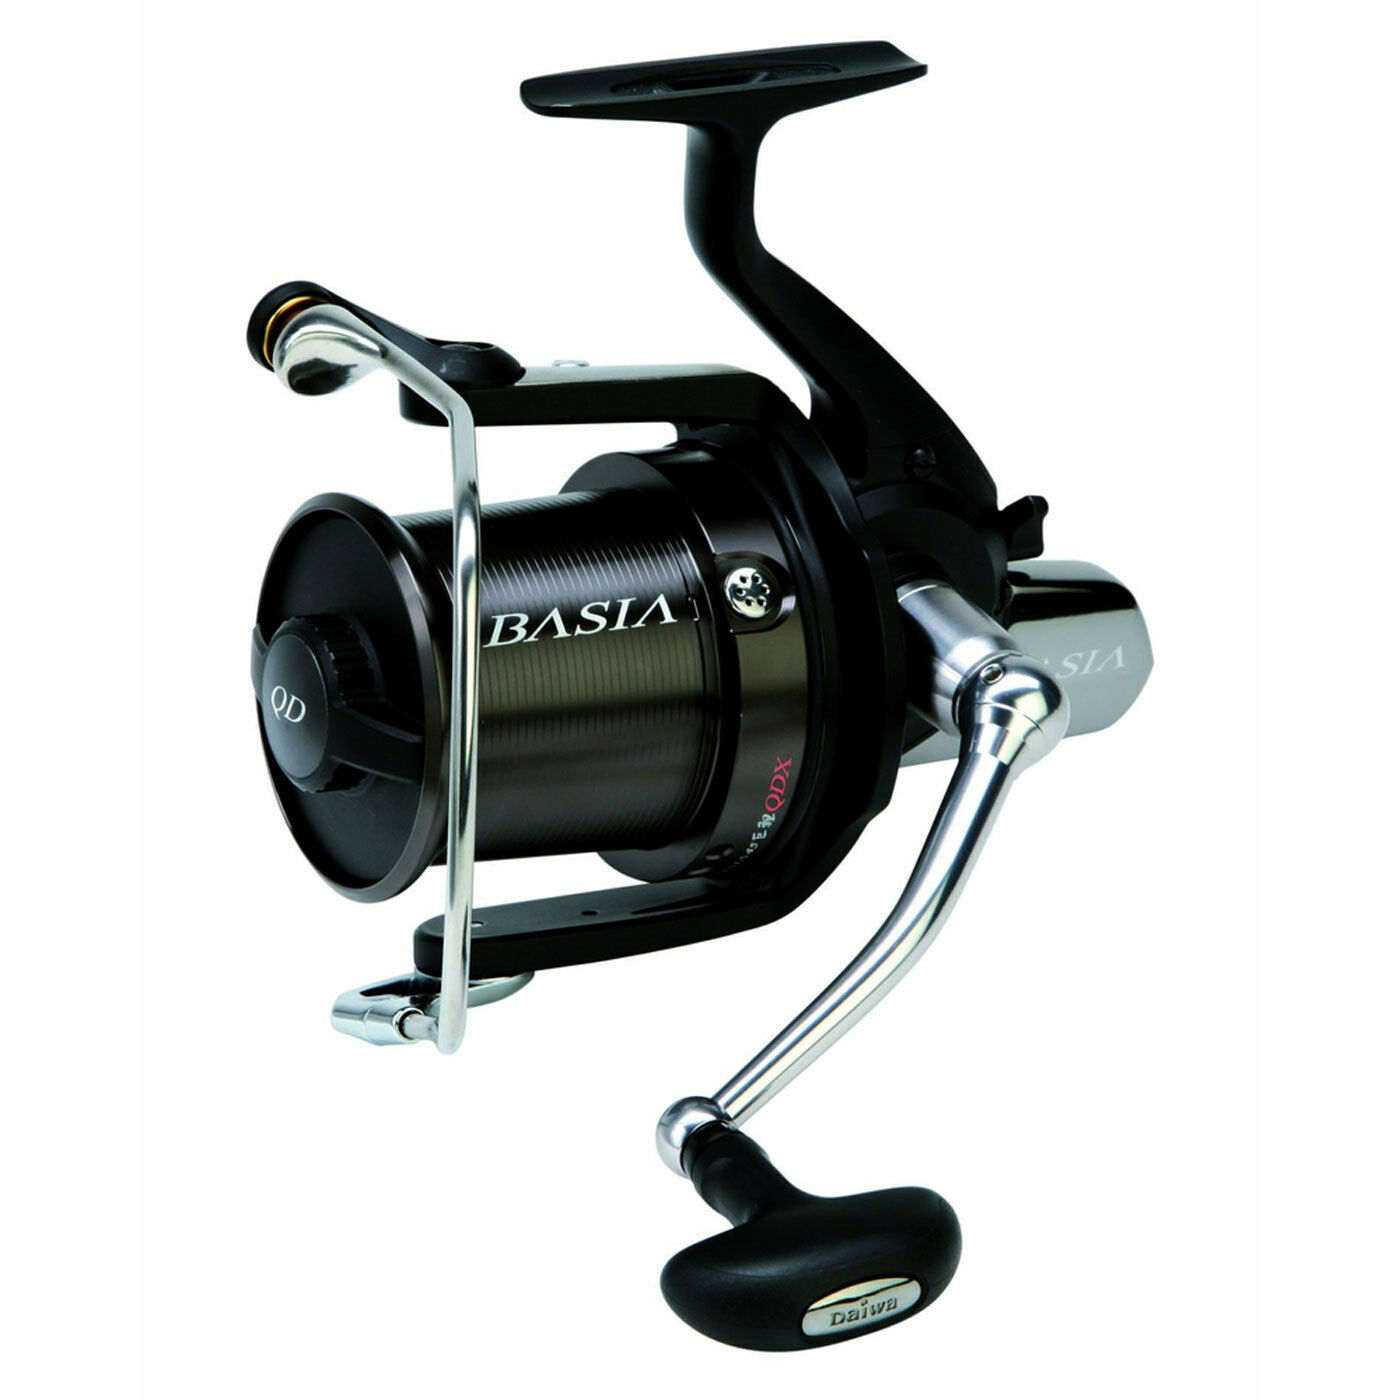 Daiwa Tournament Basia 45 QDX Big Pit Carp Reel Brand New - Free Delivery